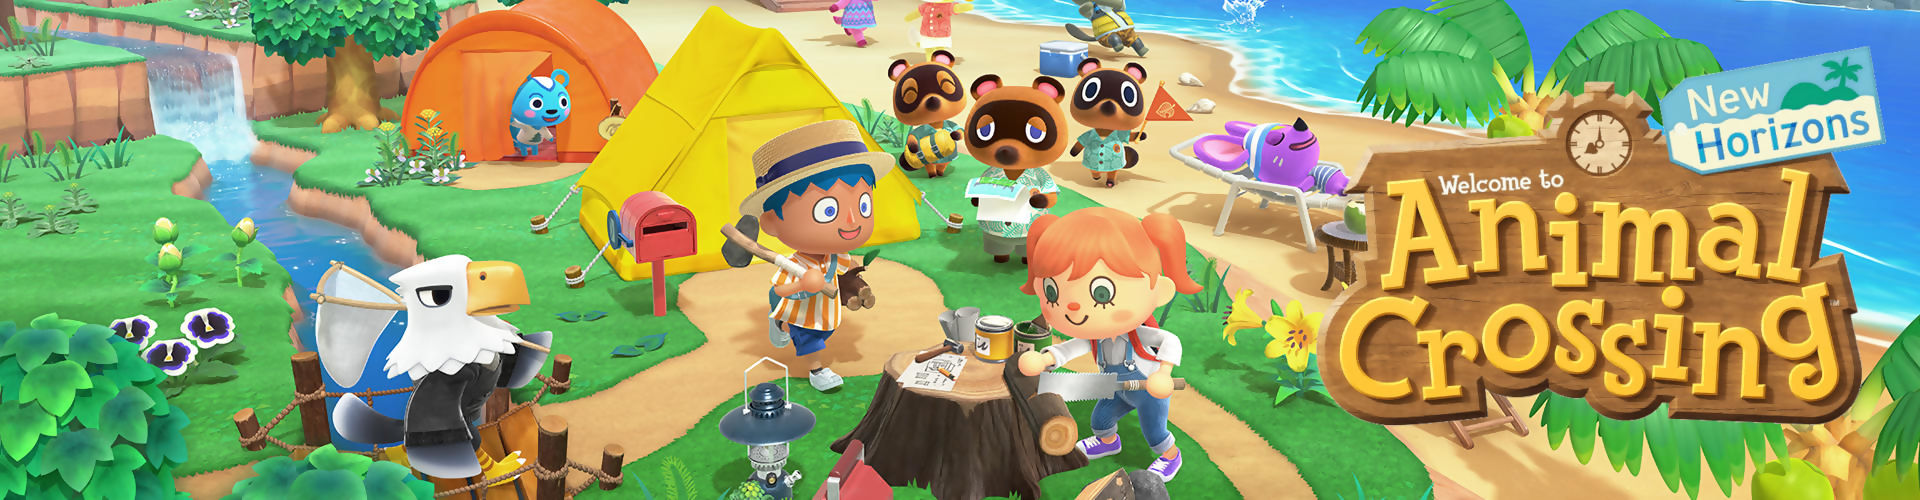 Animal Crossing: New Horizons reviews are here